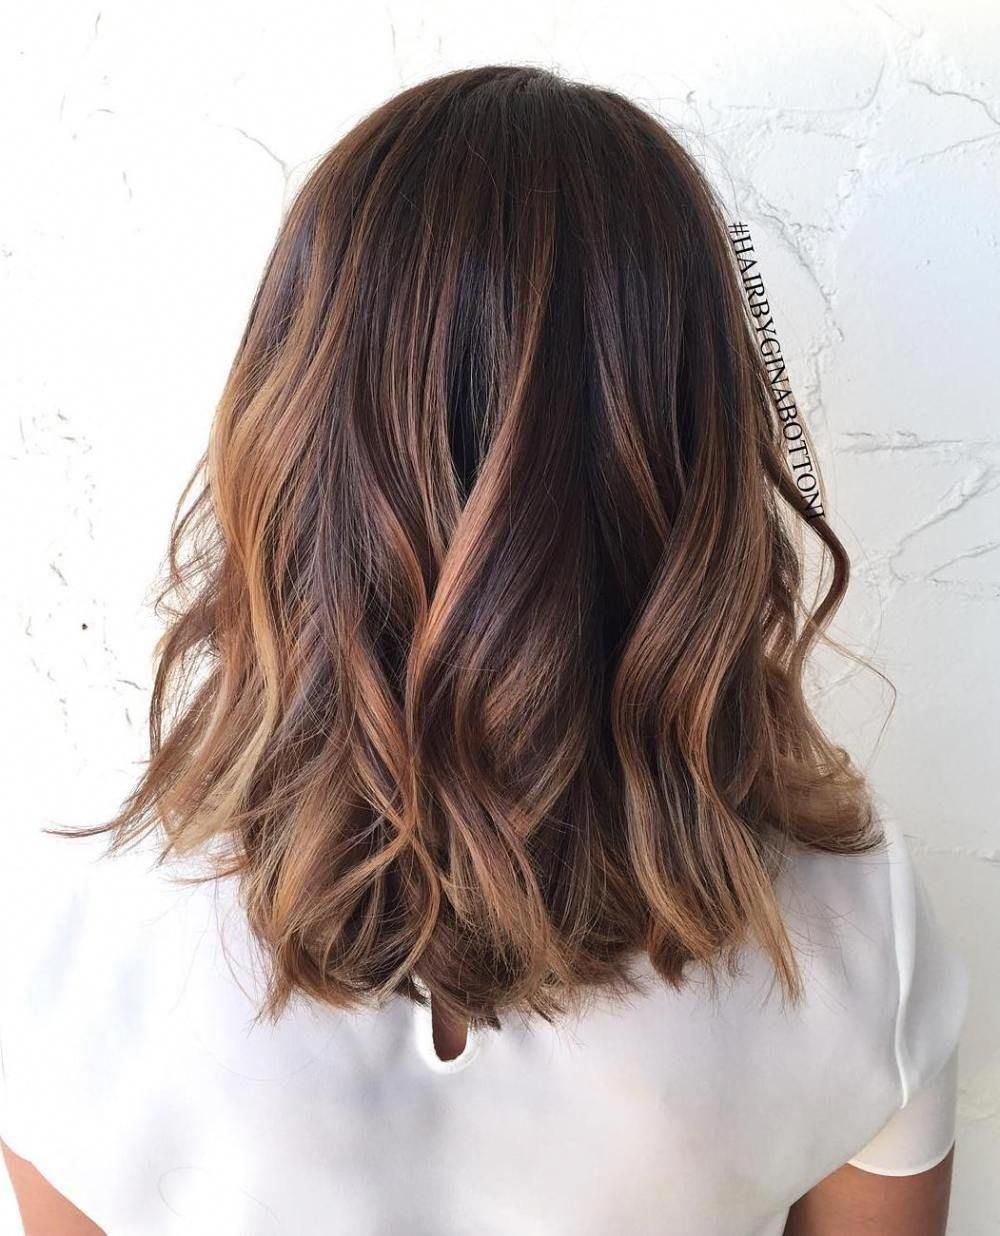 60 Chocolate Brown Hair Color Ideas for Brunettes – Blog – Peinados facile